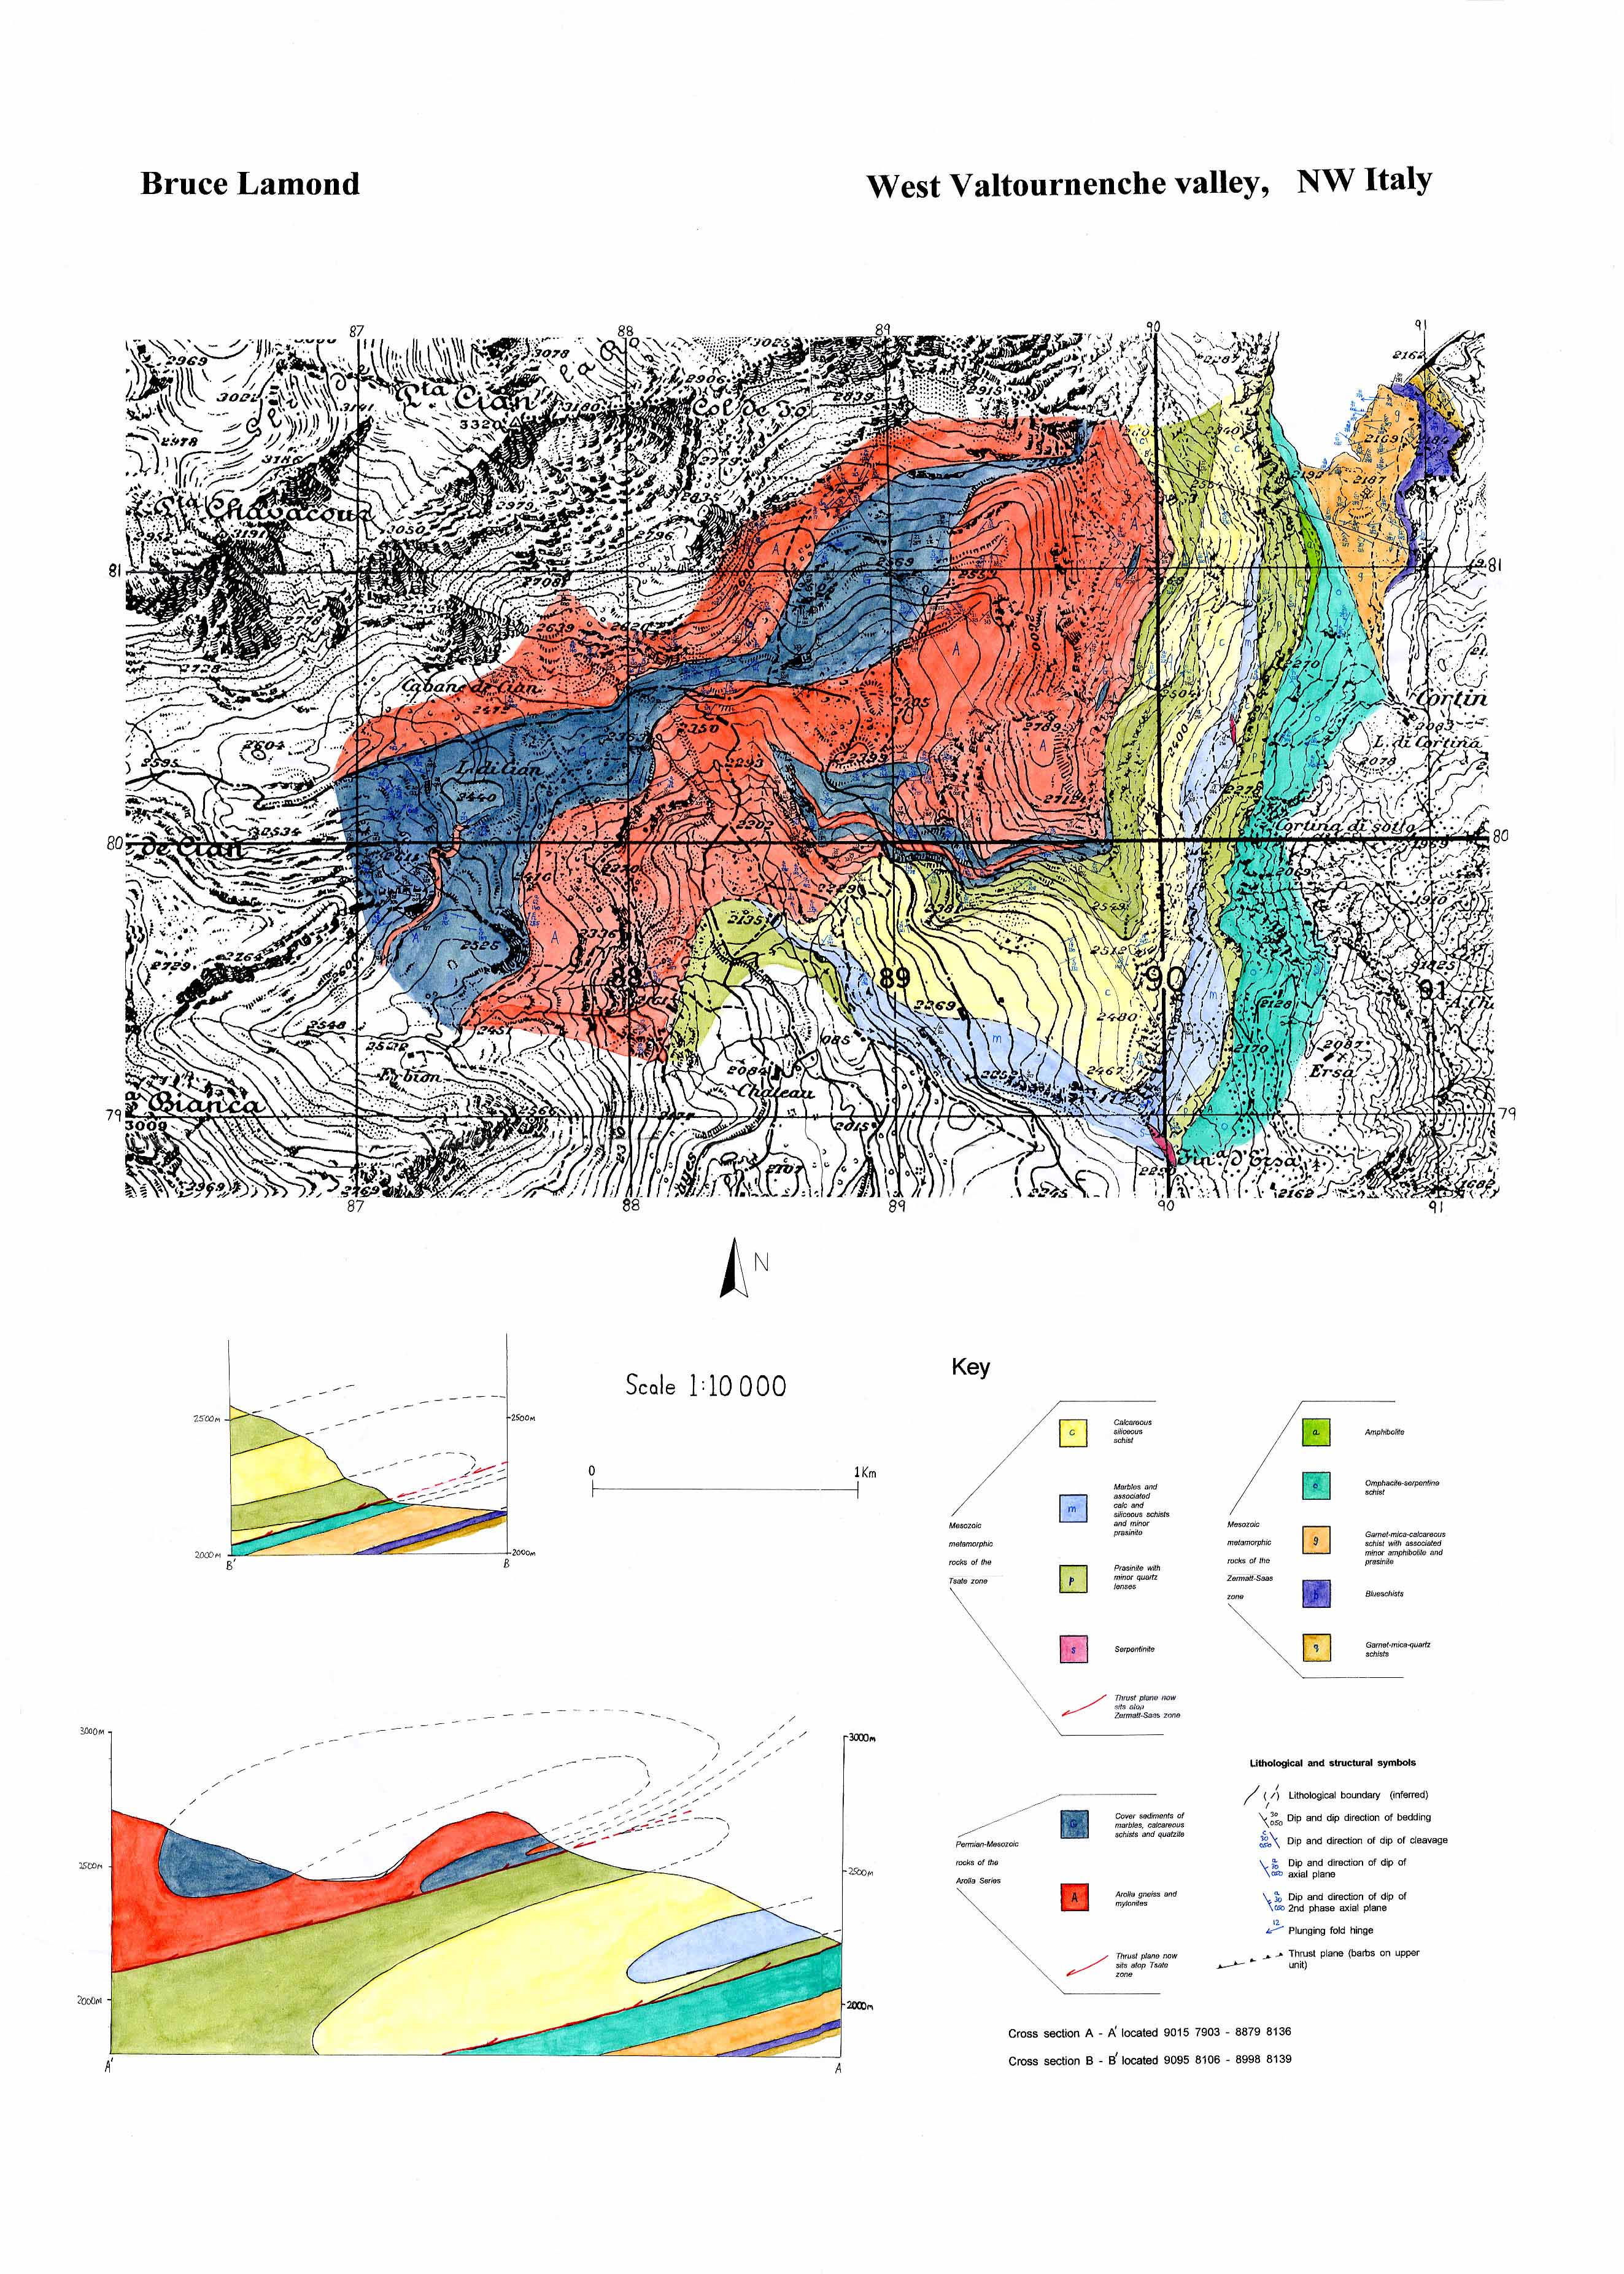 geology phd thesis The department of geological sciences welcomes all qualified applicants to its graduate master's degree program applicants should possess an undergraduate degree in geology or an allied natural or physical science, such as biology, chemistry, physics, mathematics, or engineering a master's degree.